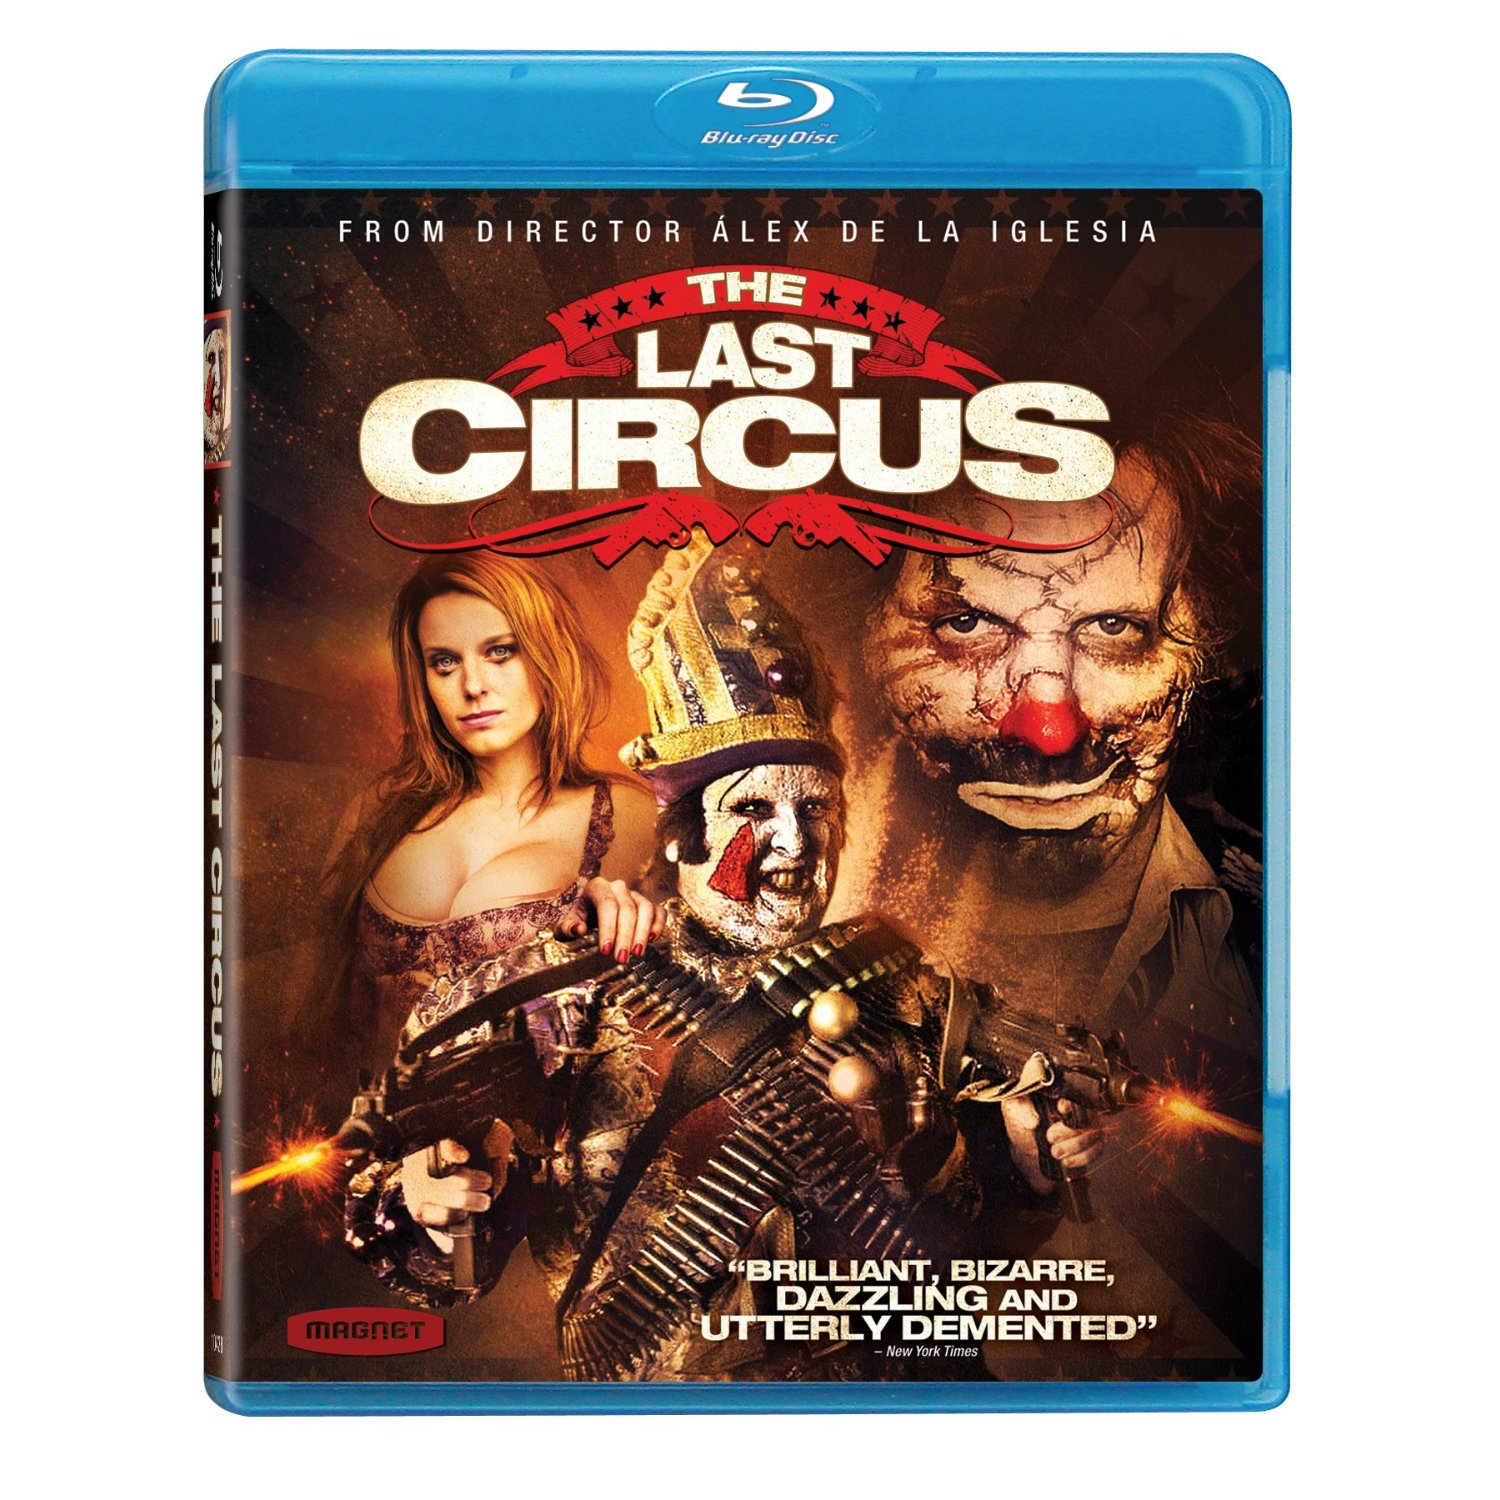 Blu-Ray Review: Álex de la Iglesia's Clowns go Insane in 'The Last Circus'